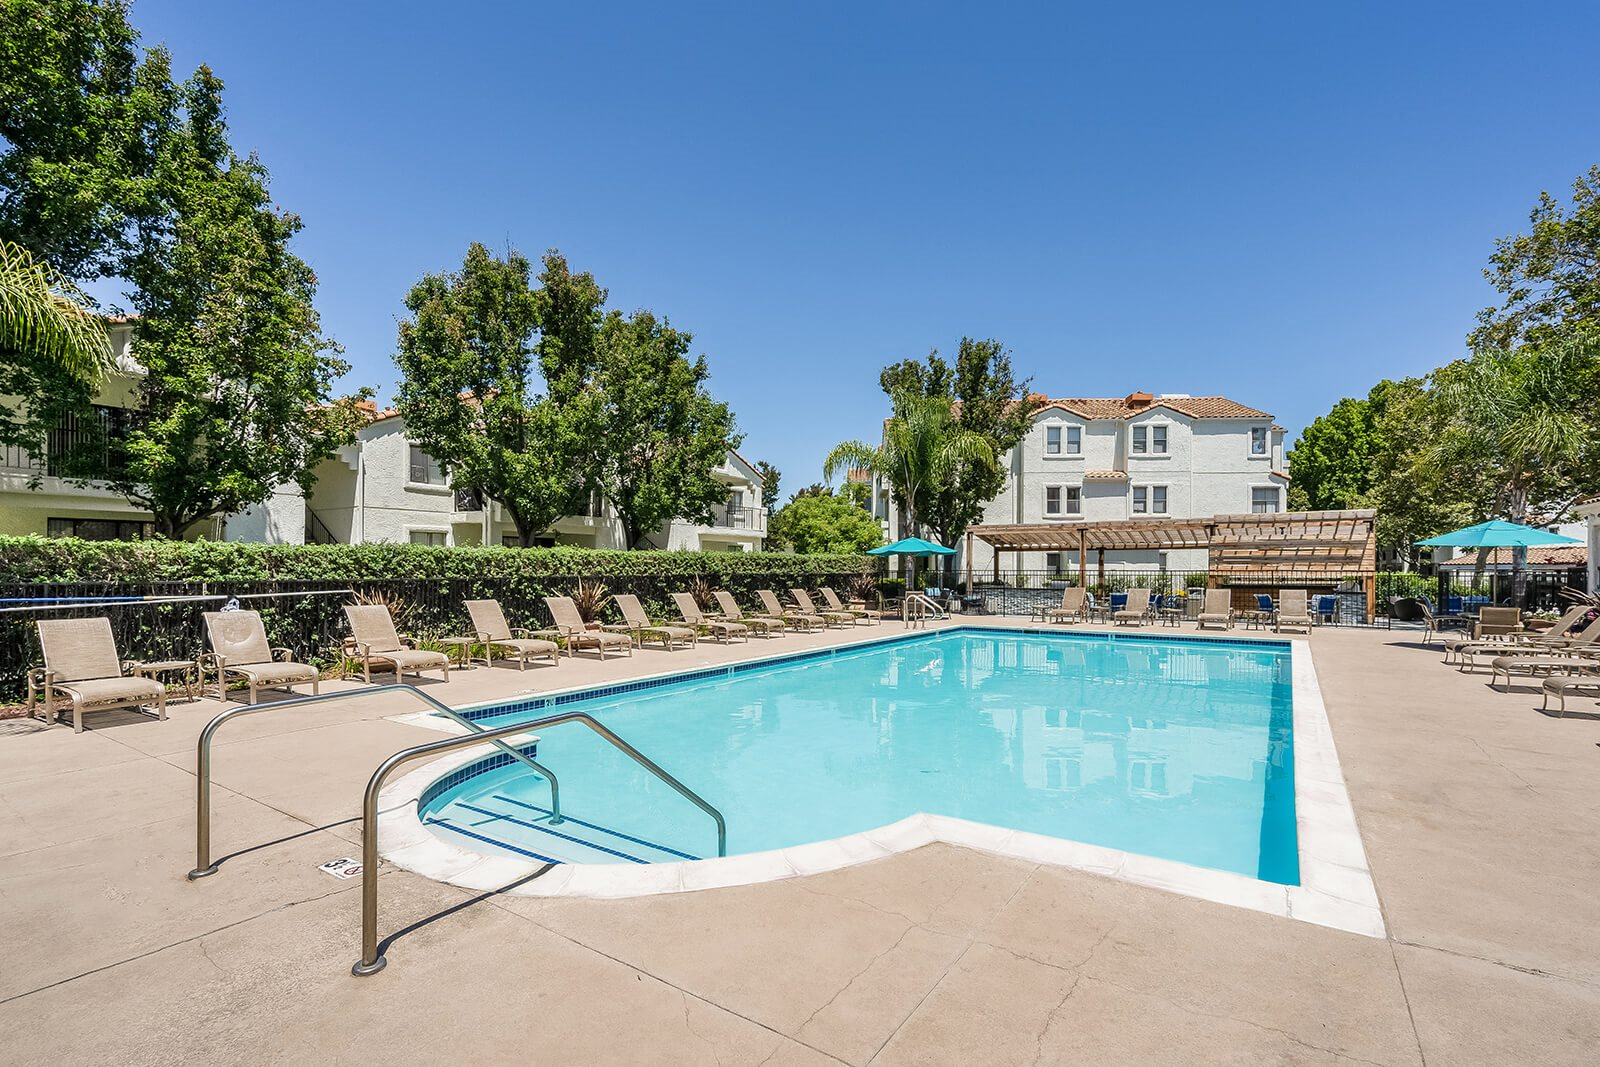 Comfortable Apartments with Thoughtful Amenities at Mission Pointe by Windsor, 1063 Morse Avenue, Sunnyvale